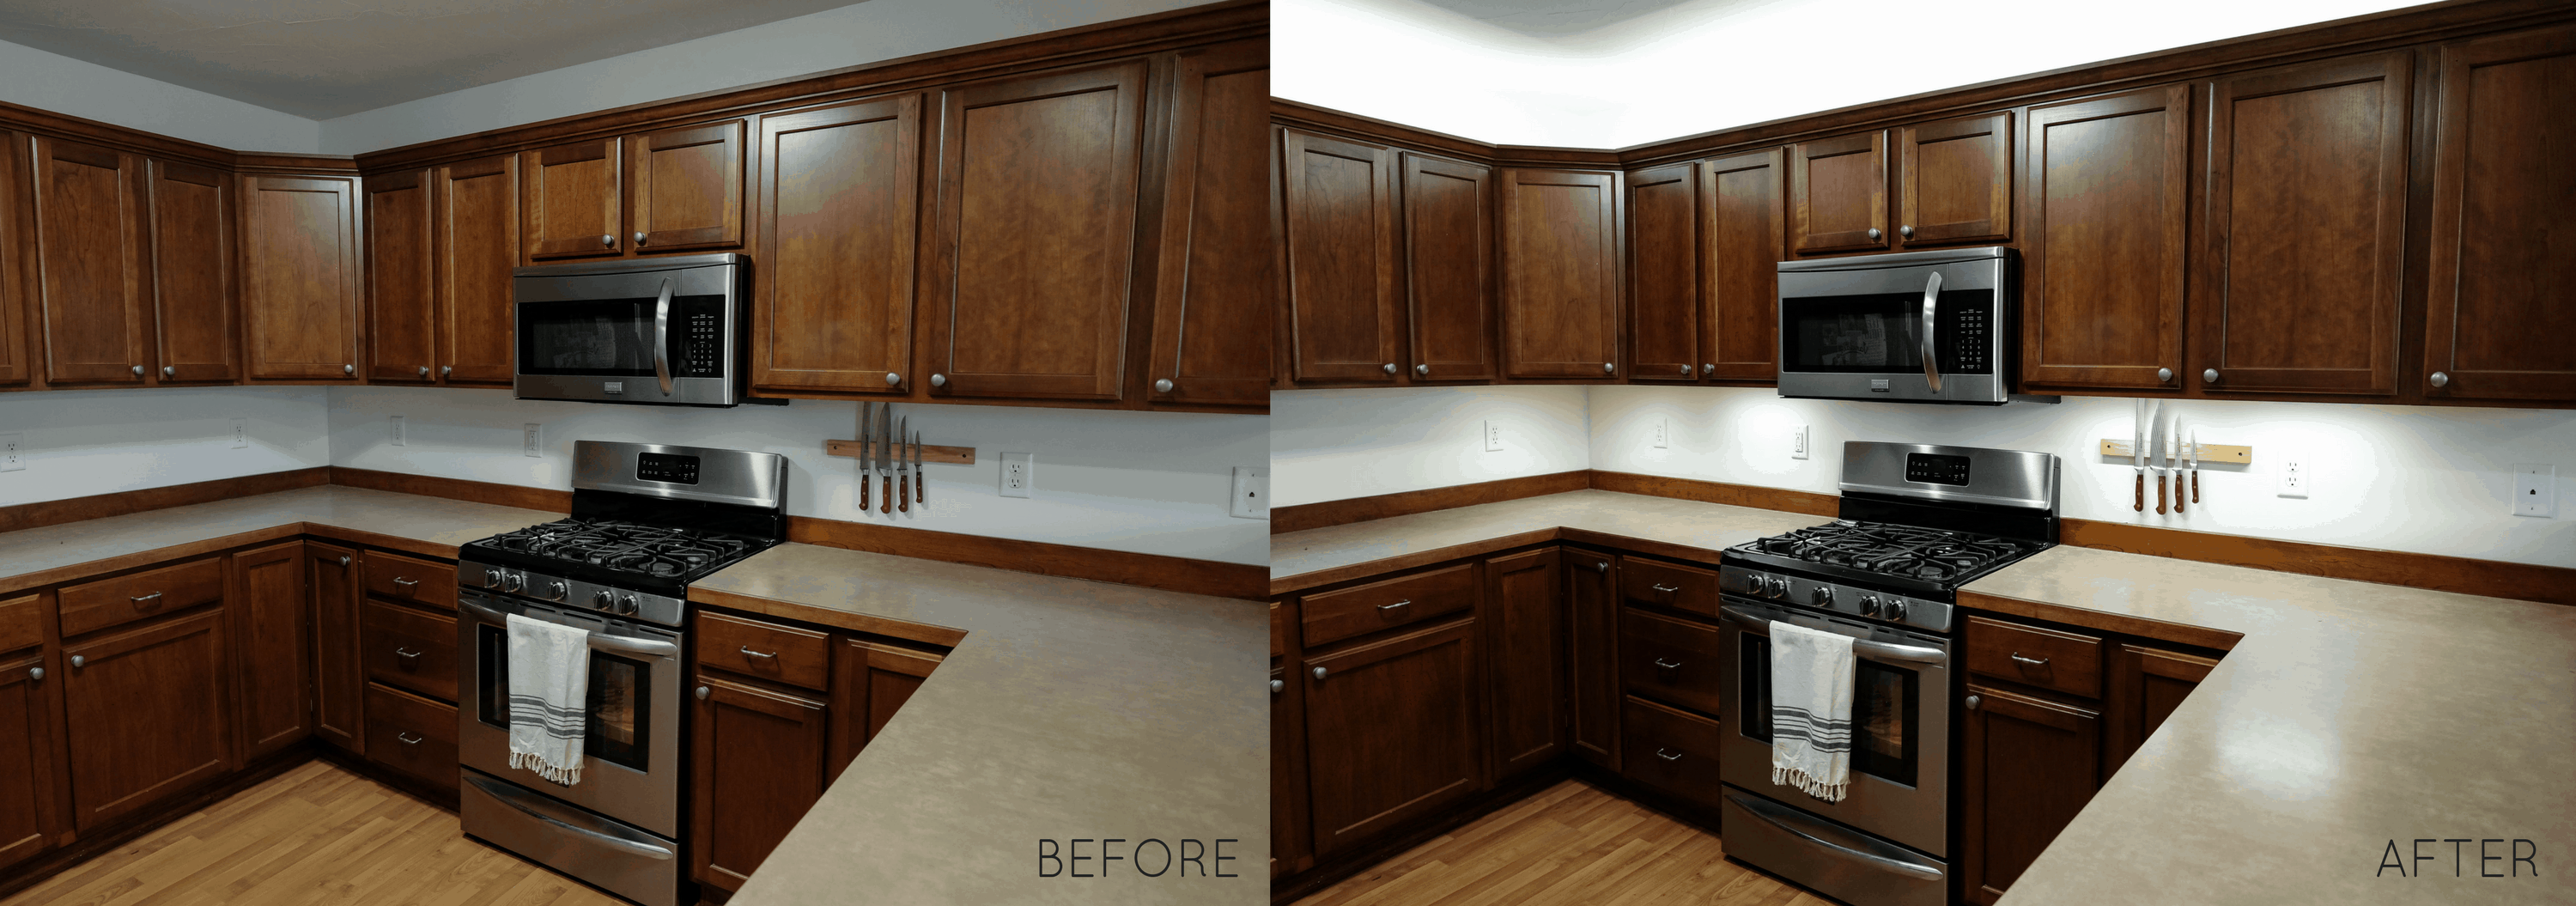 DIY Cabinet Lighting in 30 Minutes - How to Guide